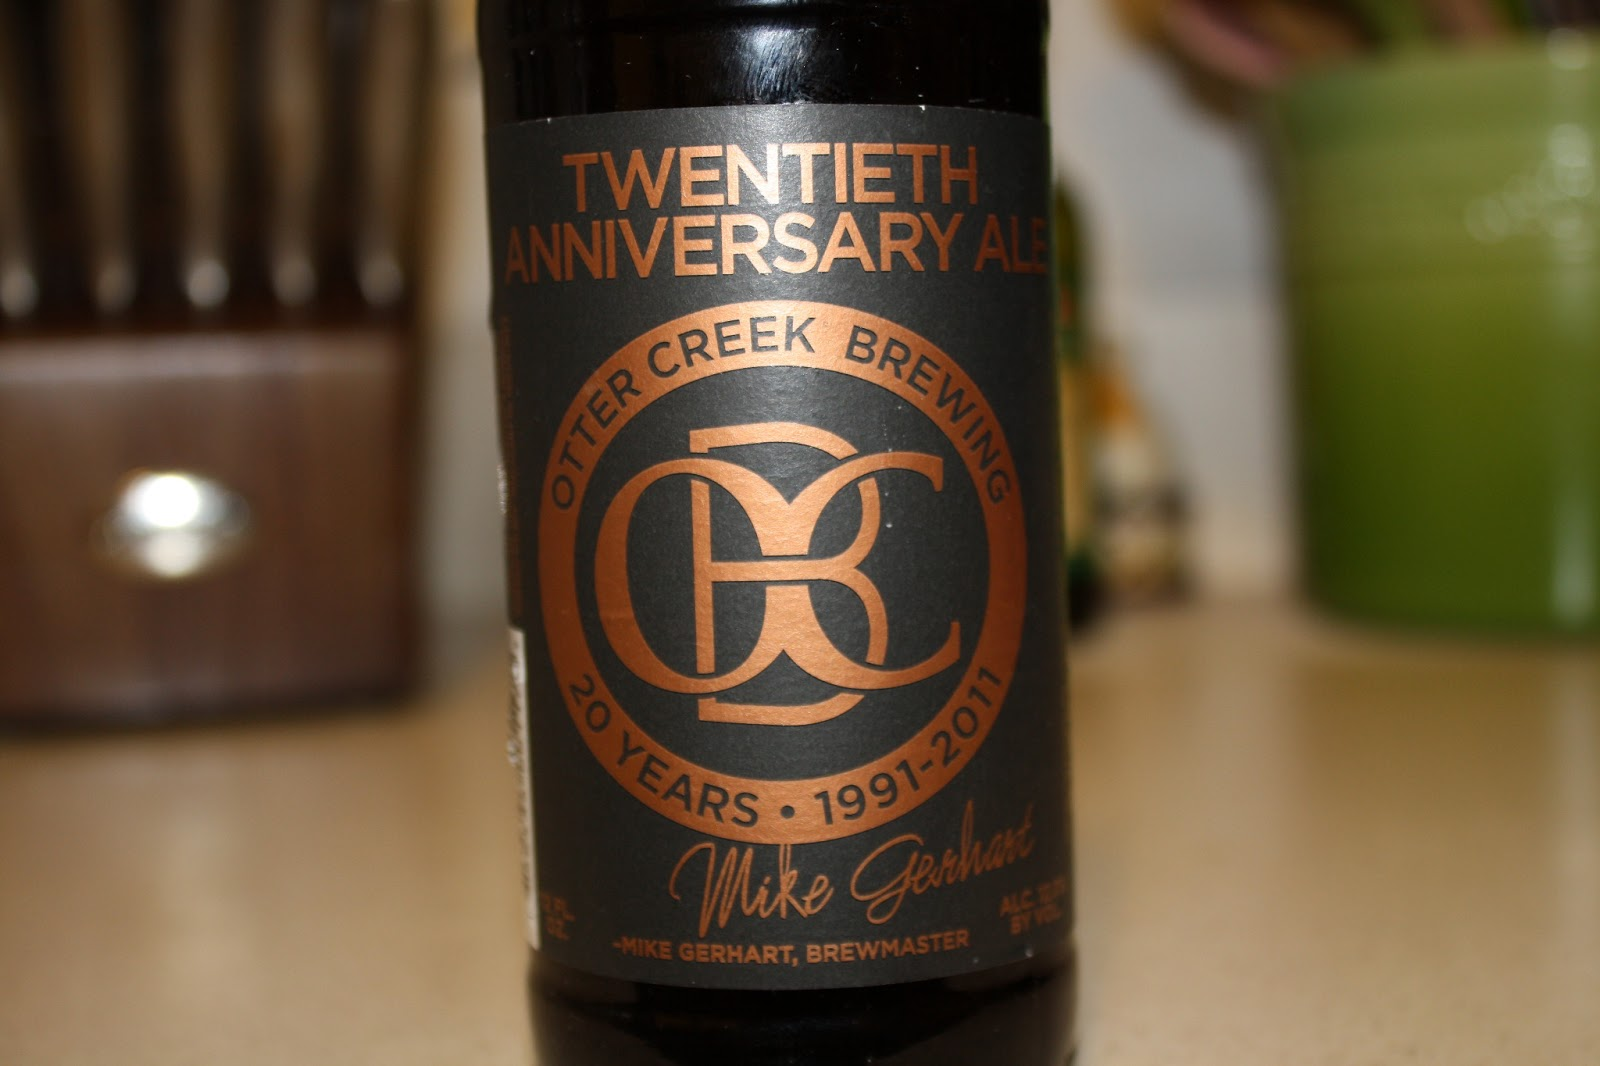 Otter Creek Brewing Twentieth Anniversary Ale